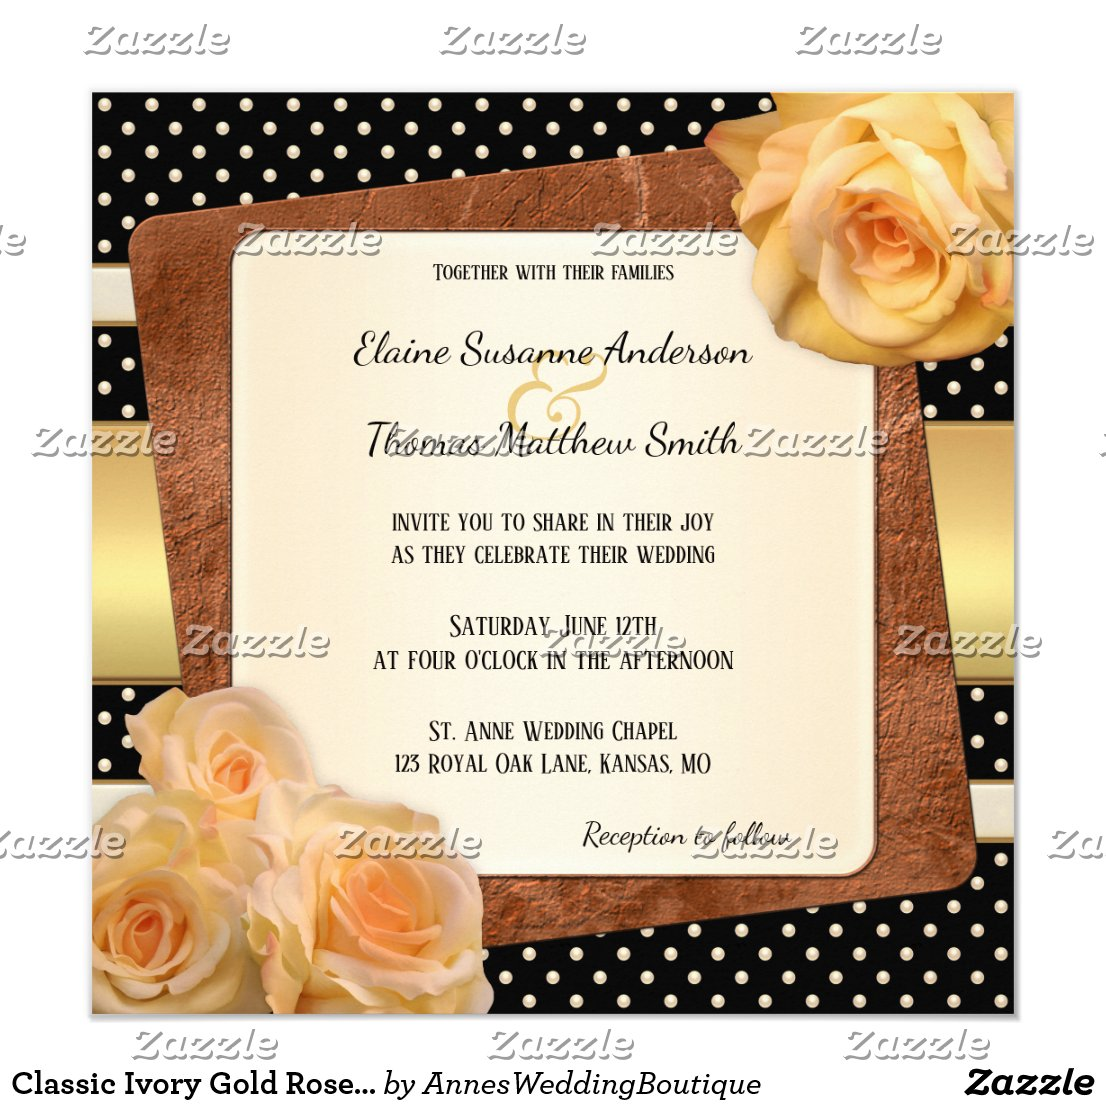 Classic Ivory Gold Roses Wedding Invitation